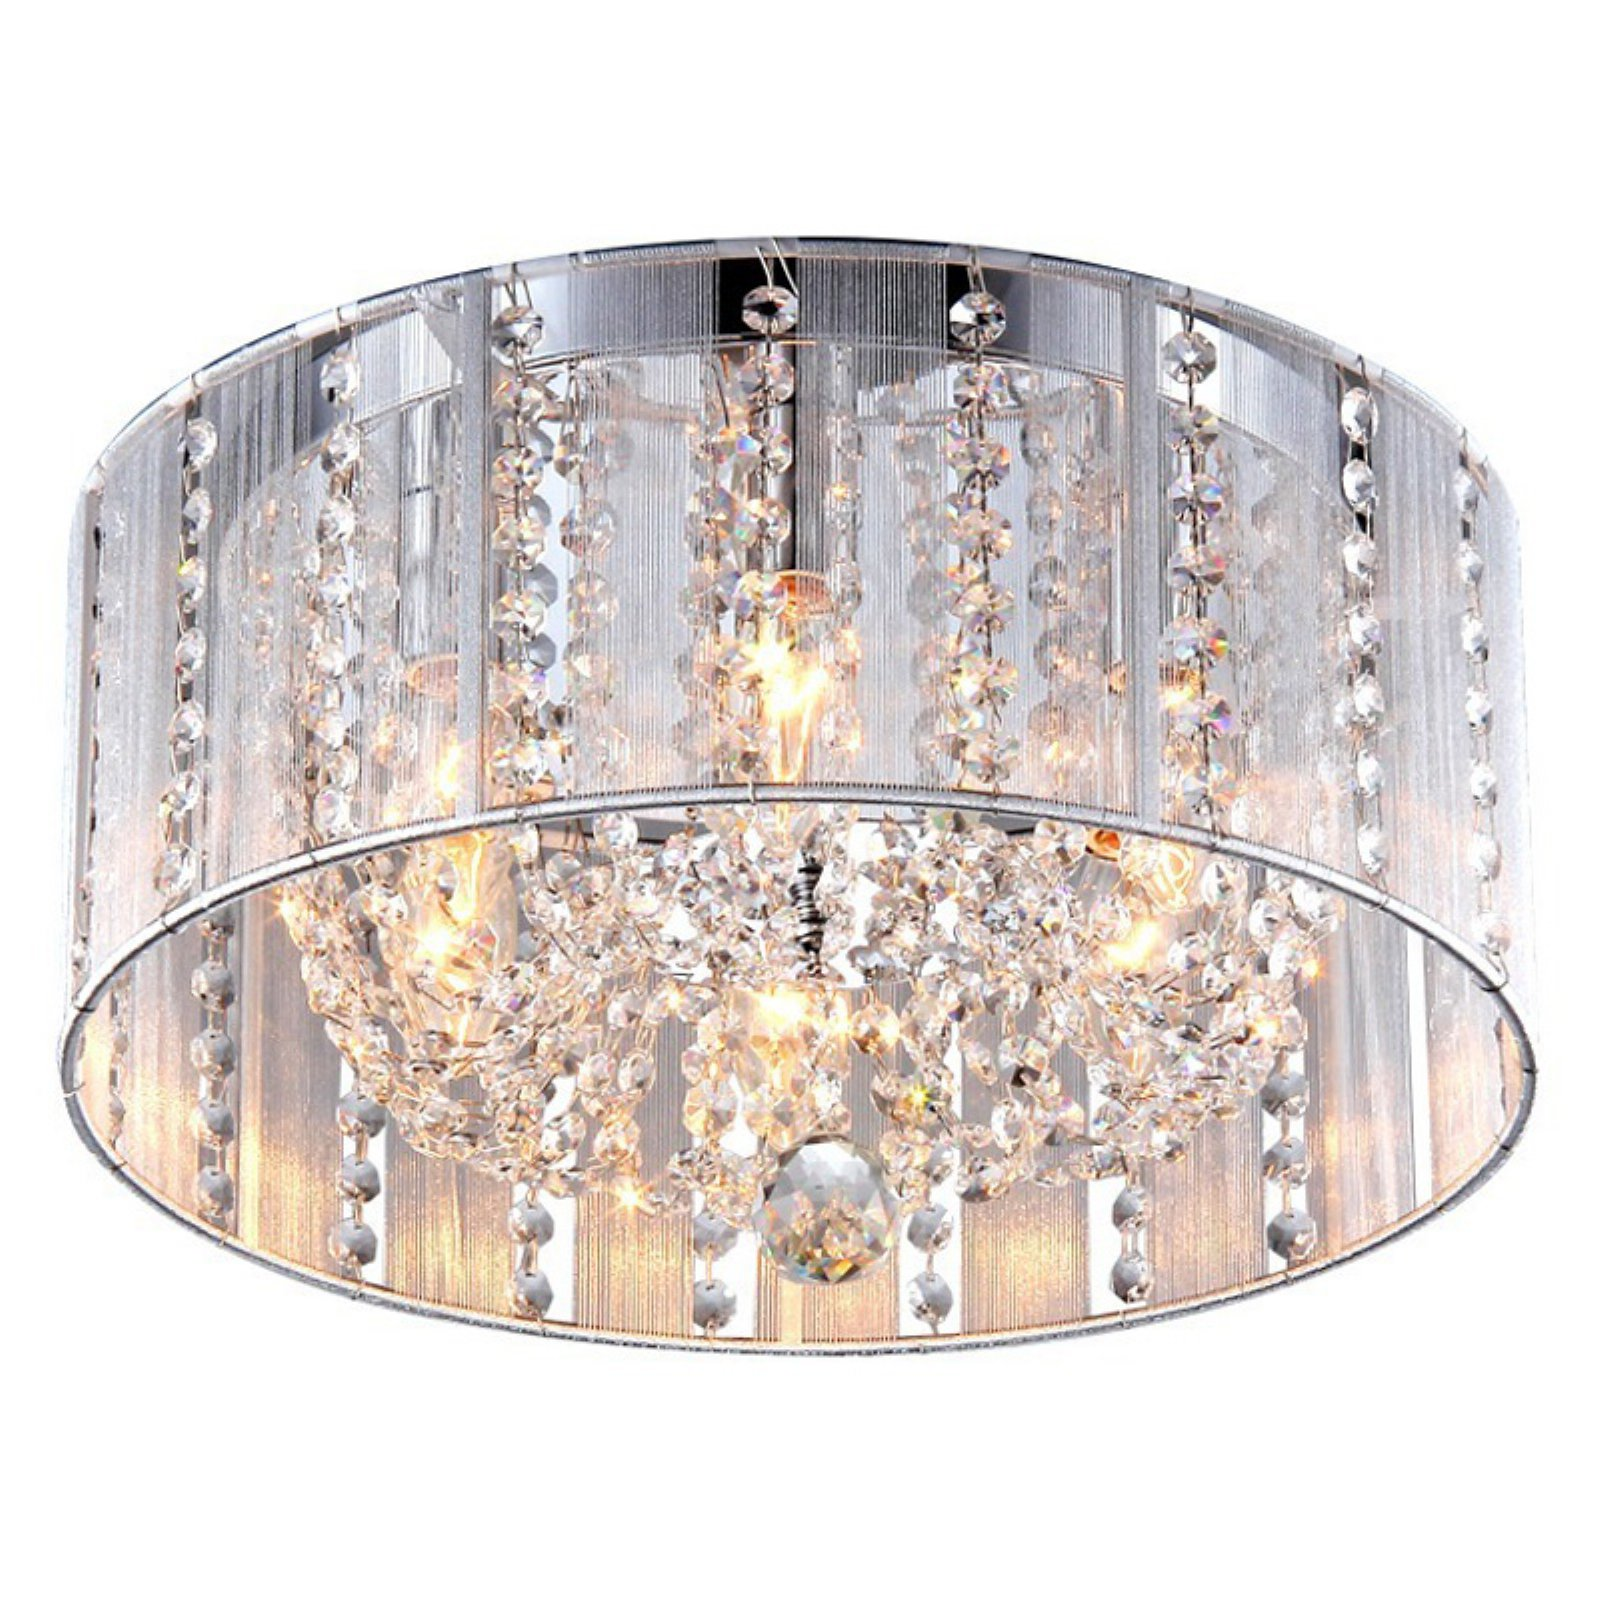 Addison 6-light White 16-inch Crystal Flush Mount